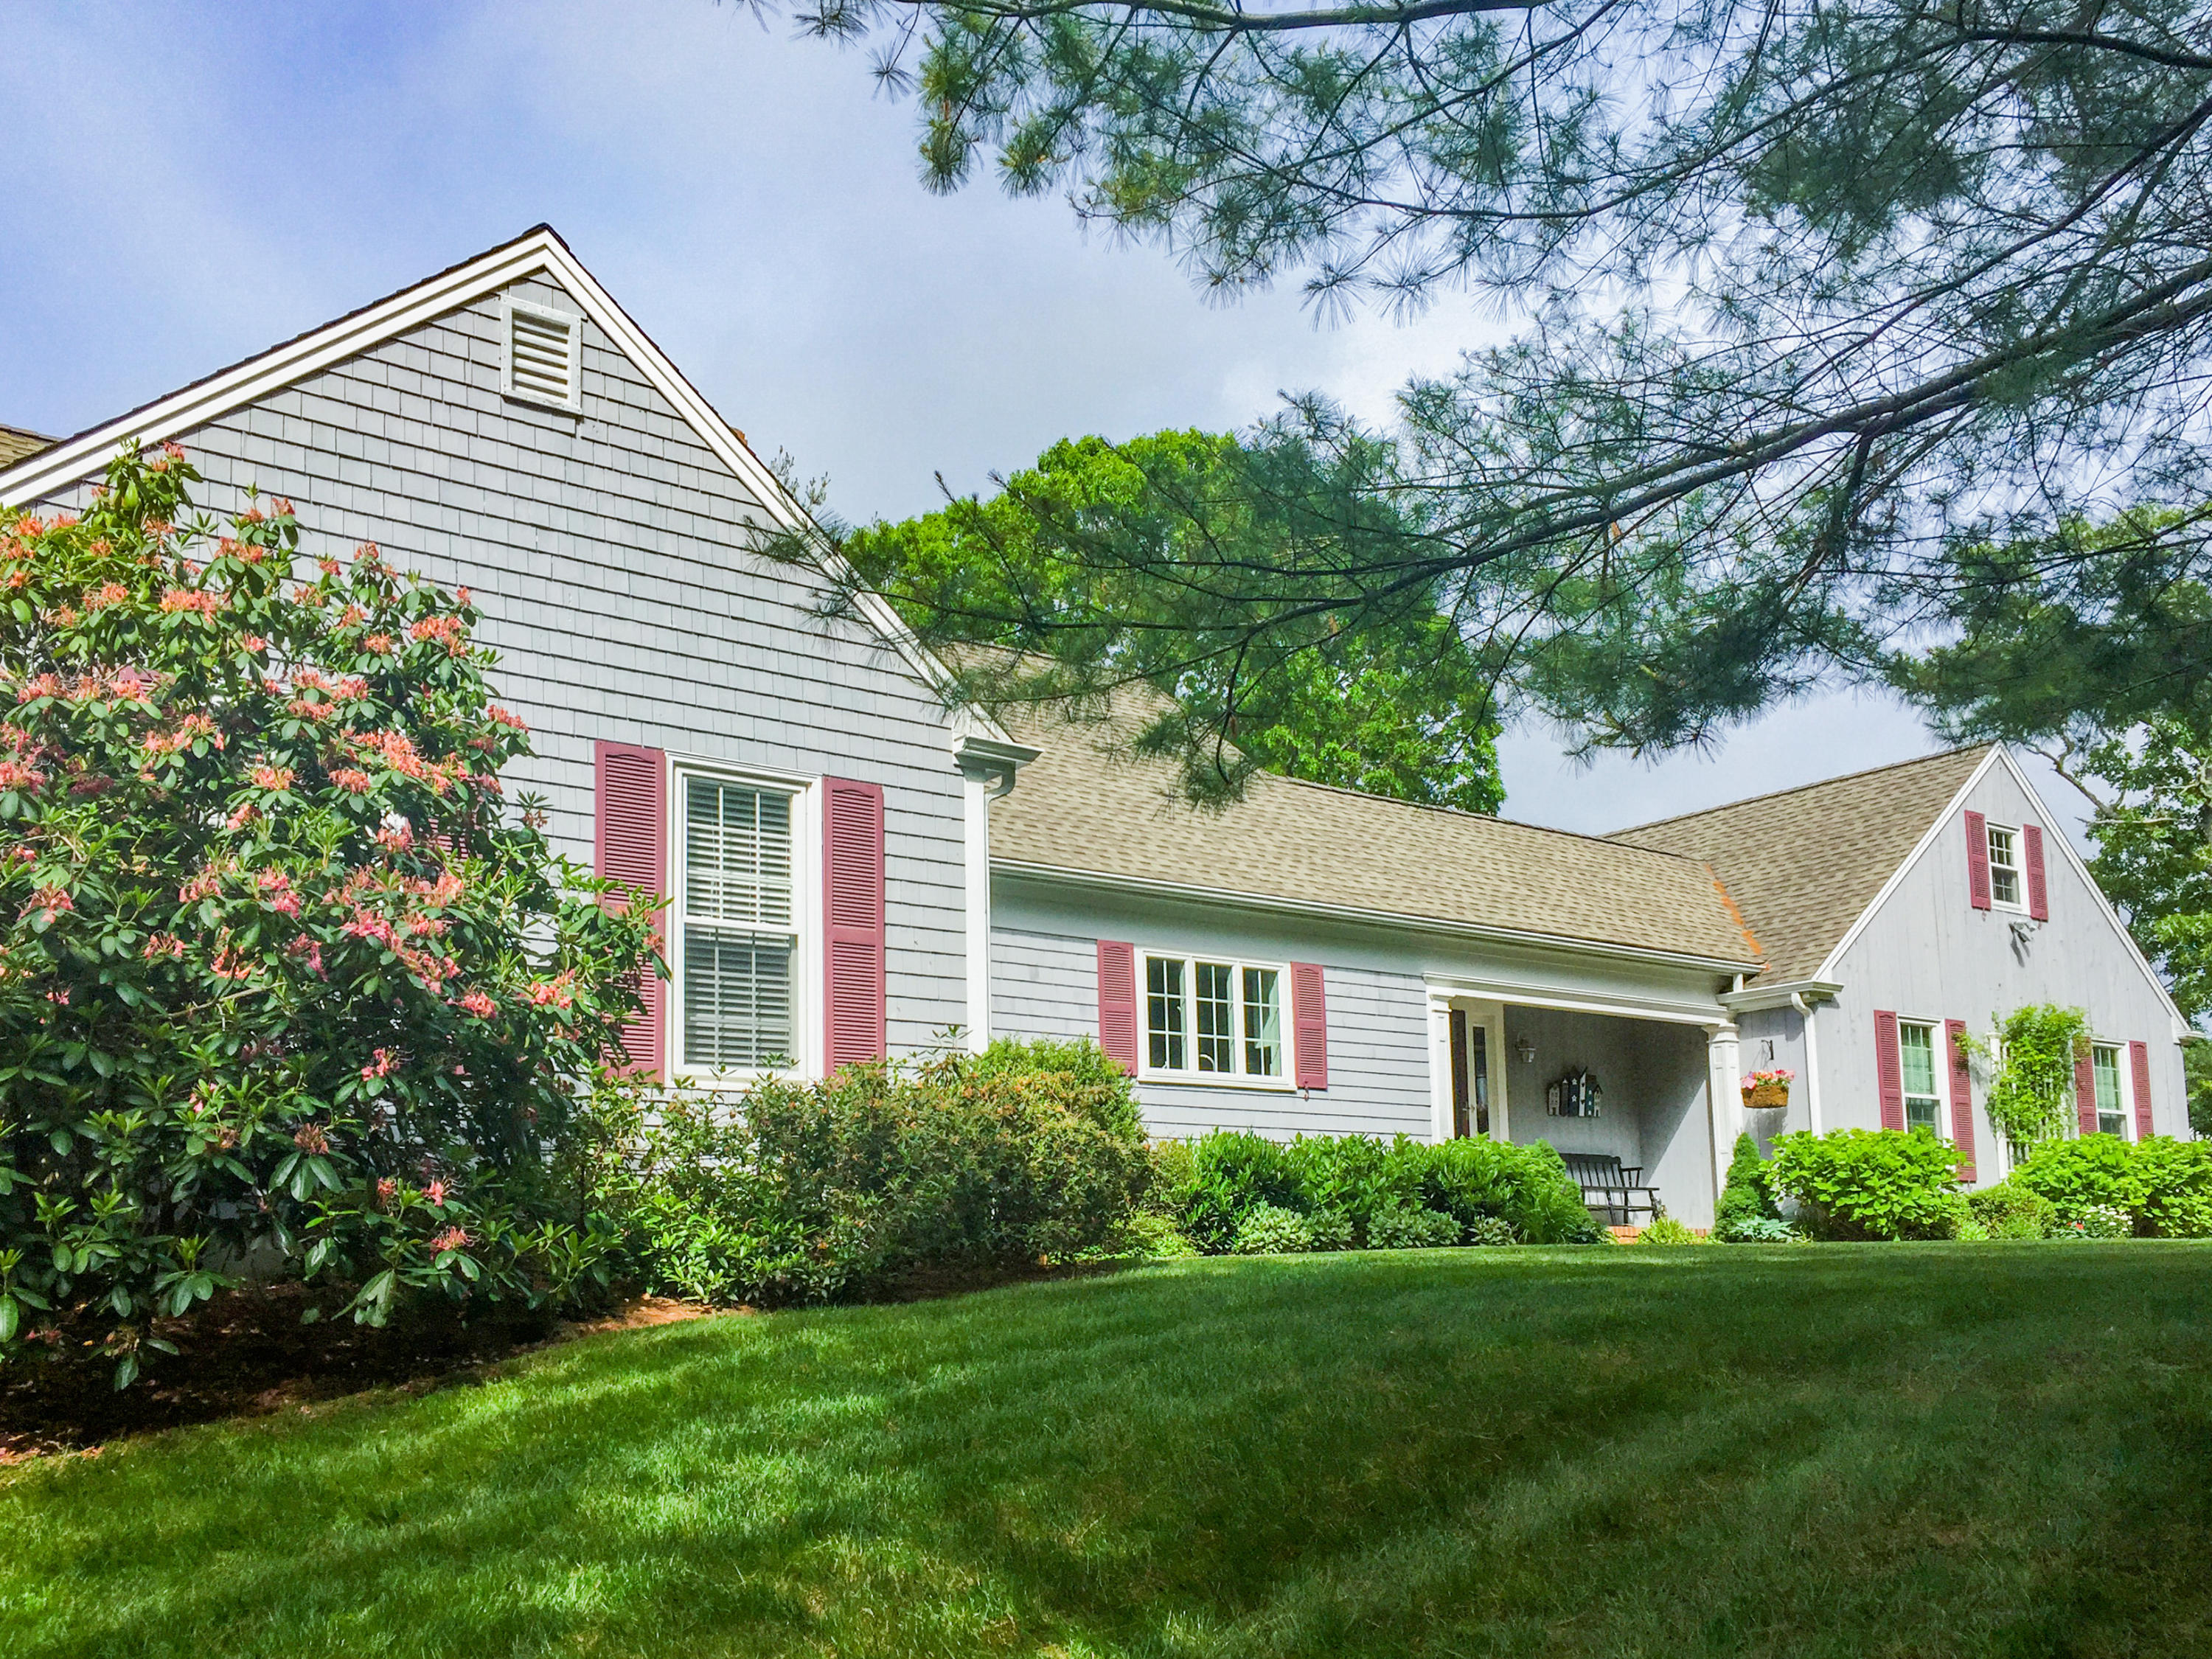 324 Deer Meadow Lane, Chatham MA, 02633